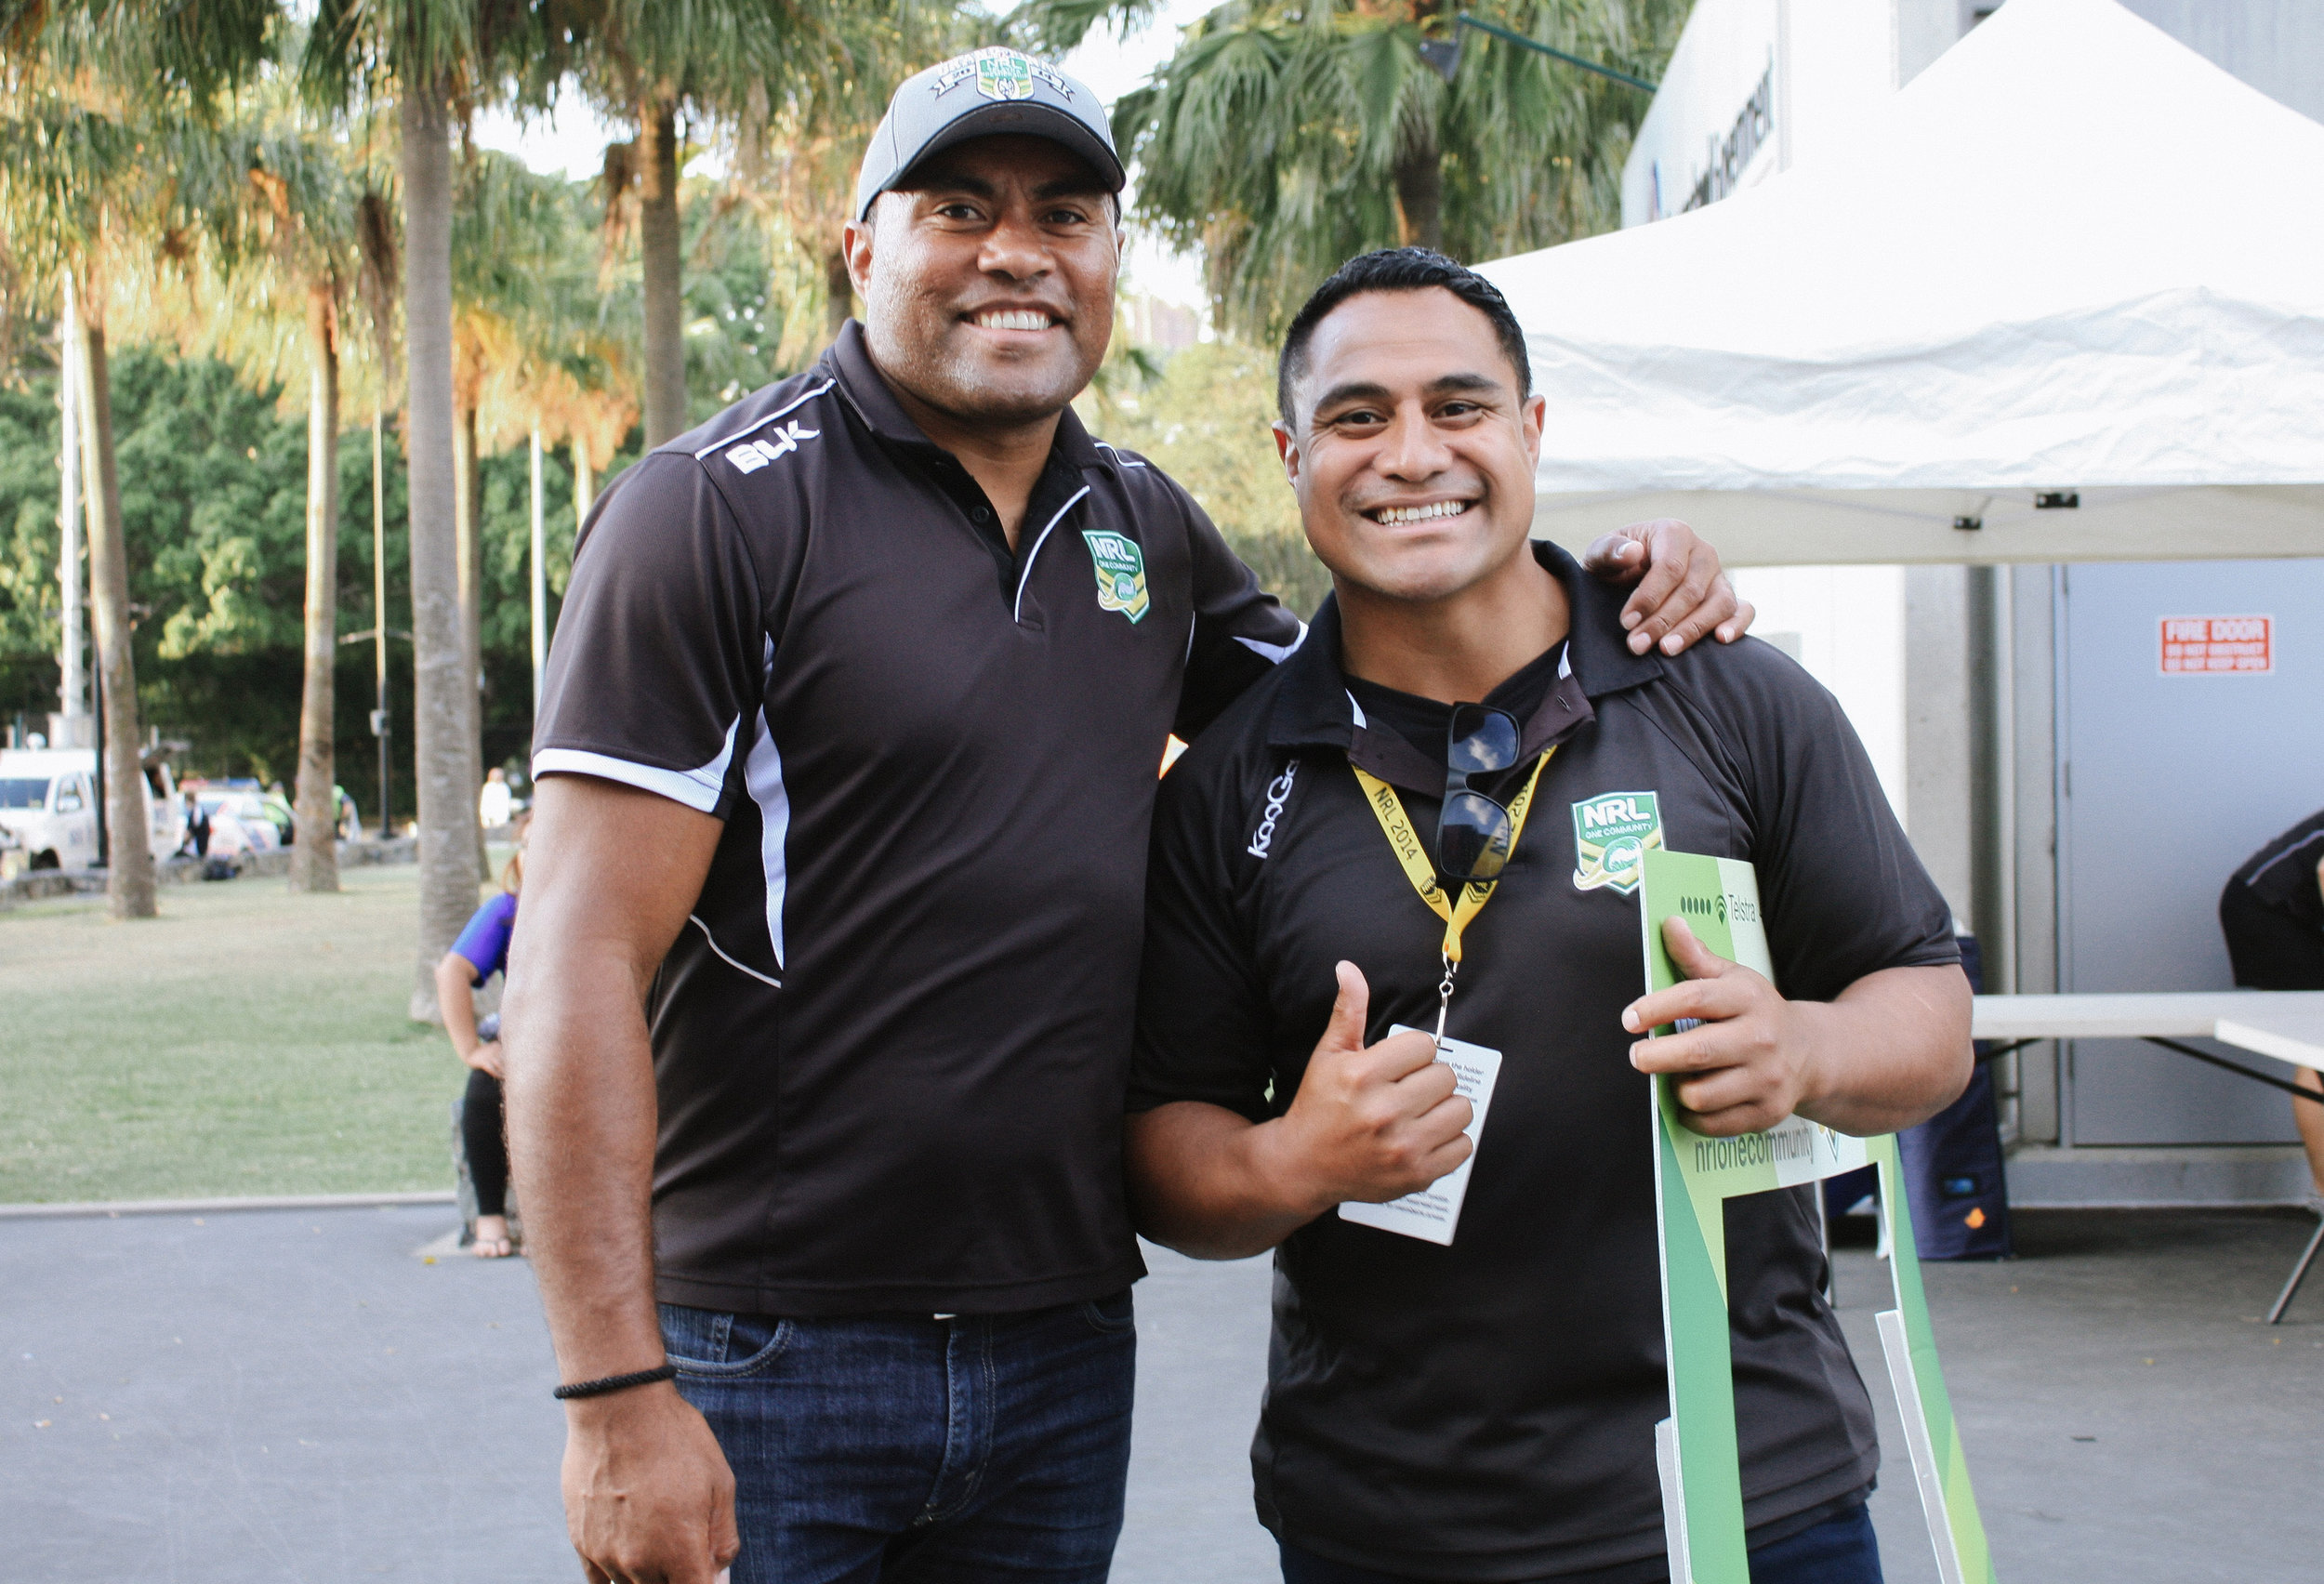 Lesly Lotha_Newzulu Australia_Four Nations_Brisbane_2014 - 12